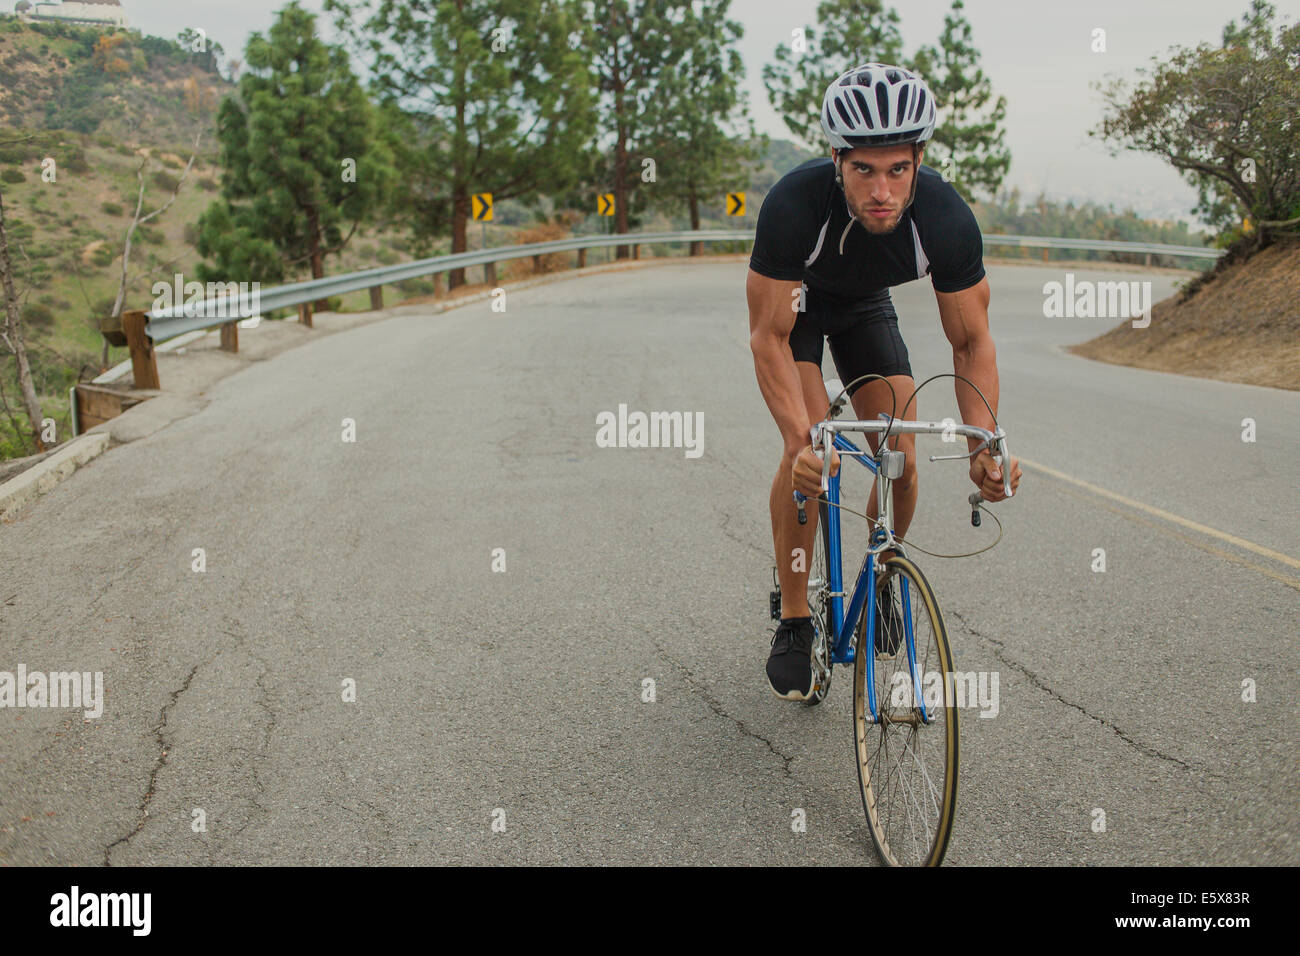 Cyclist on uphill road - Stock Image